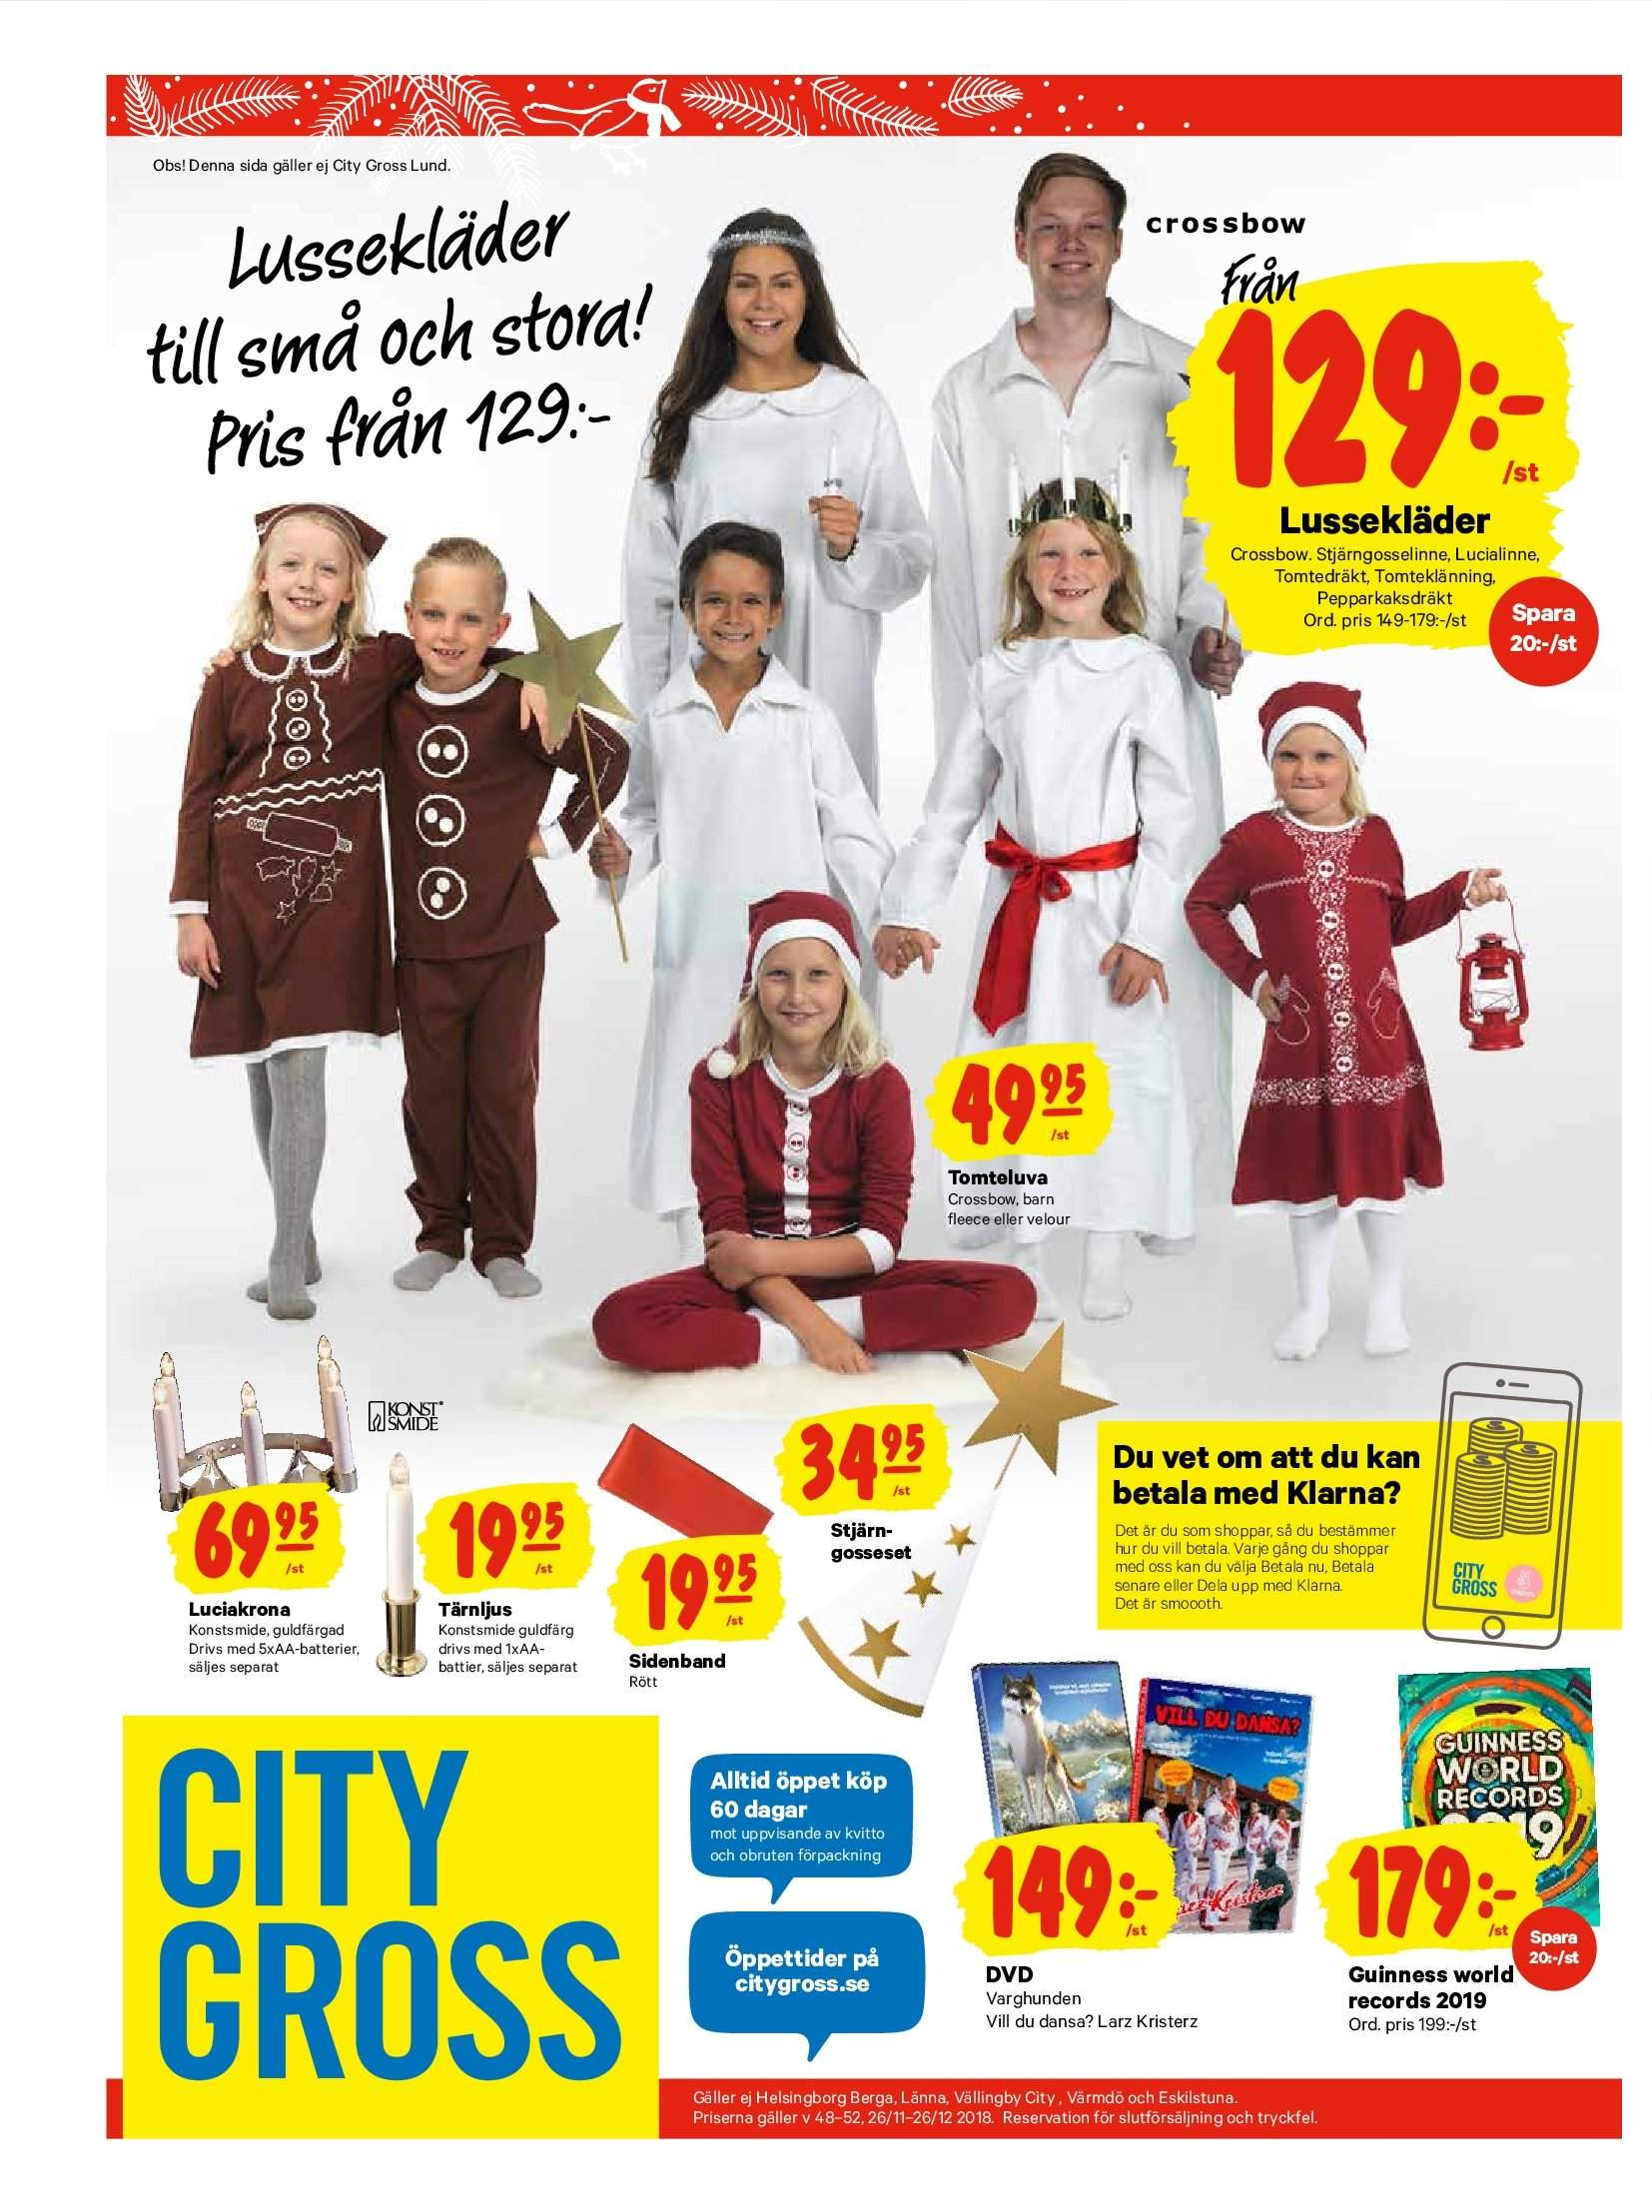 City Gross reklamblad - 26/11 2018 - 2/12 2018. Sida 20.